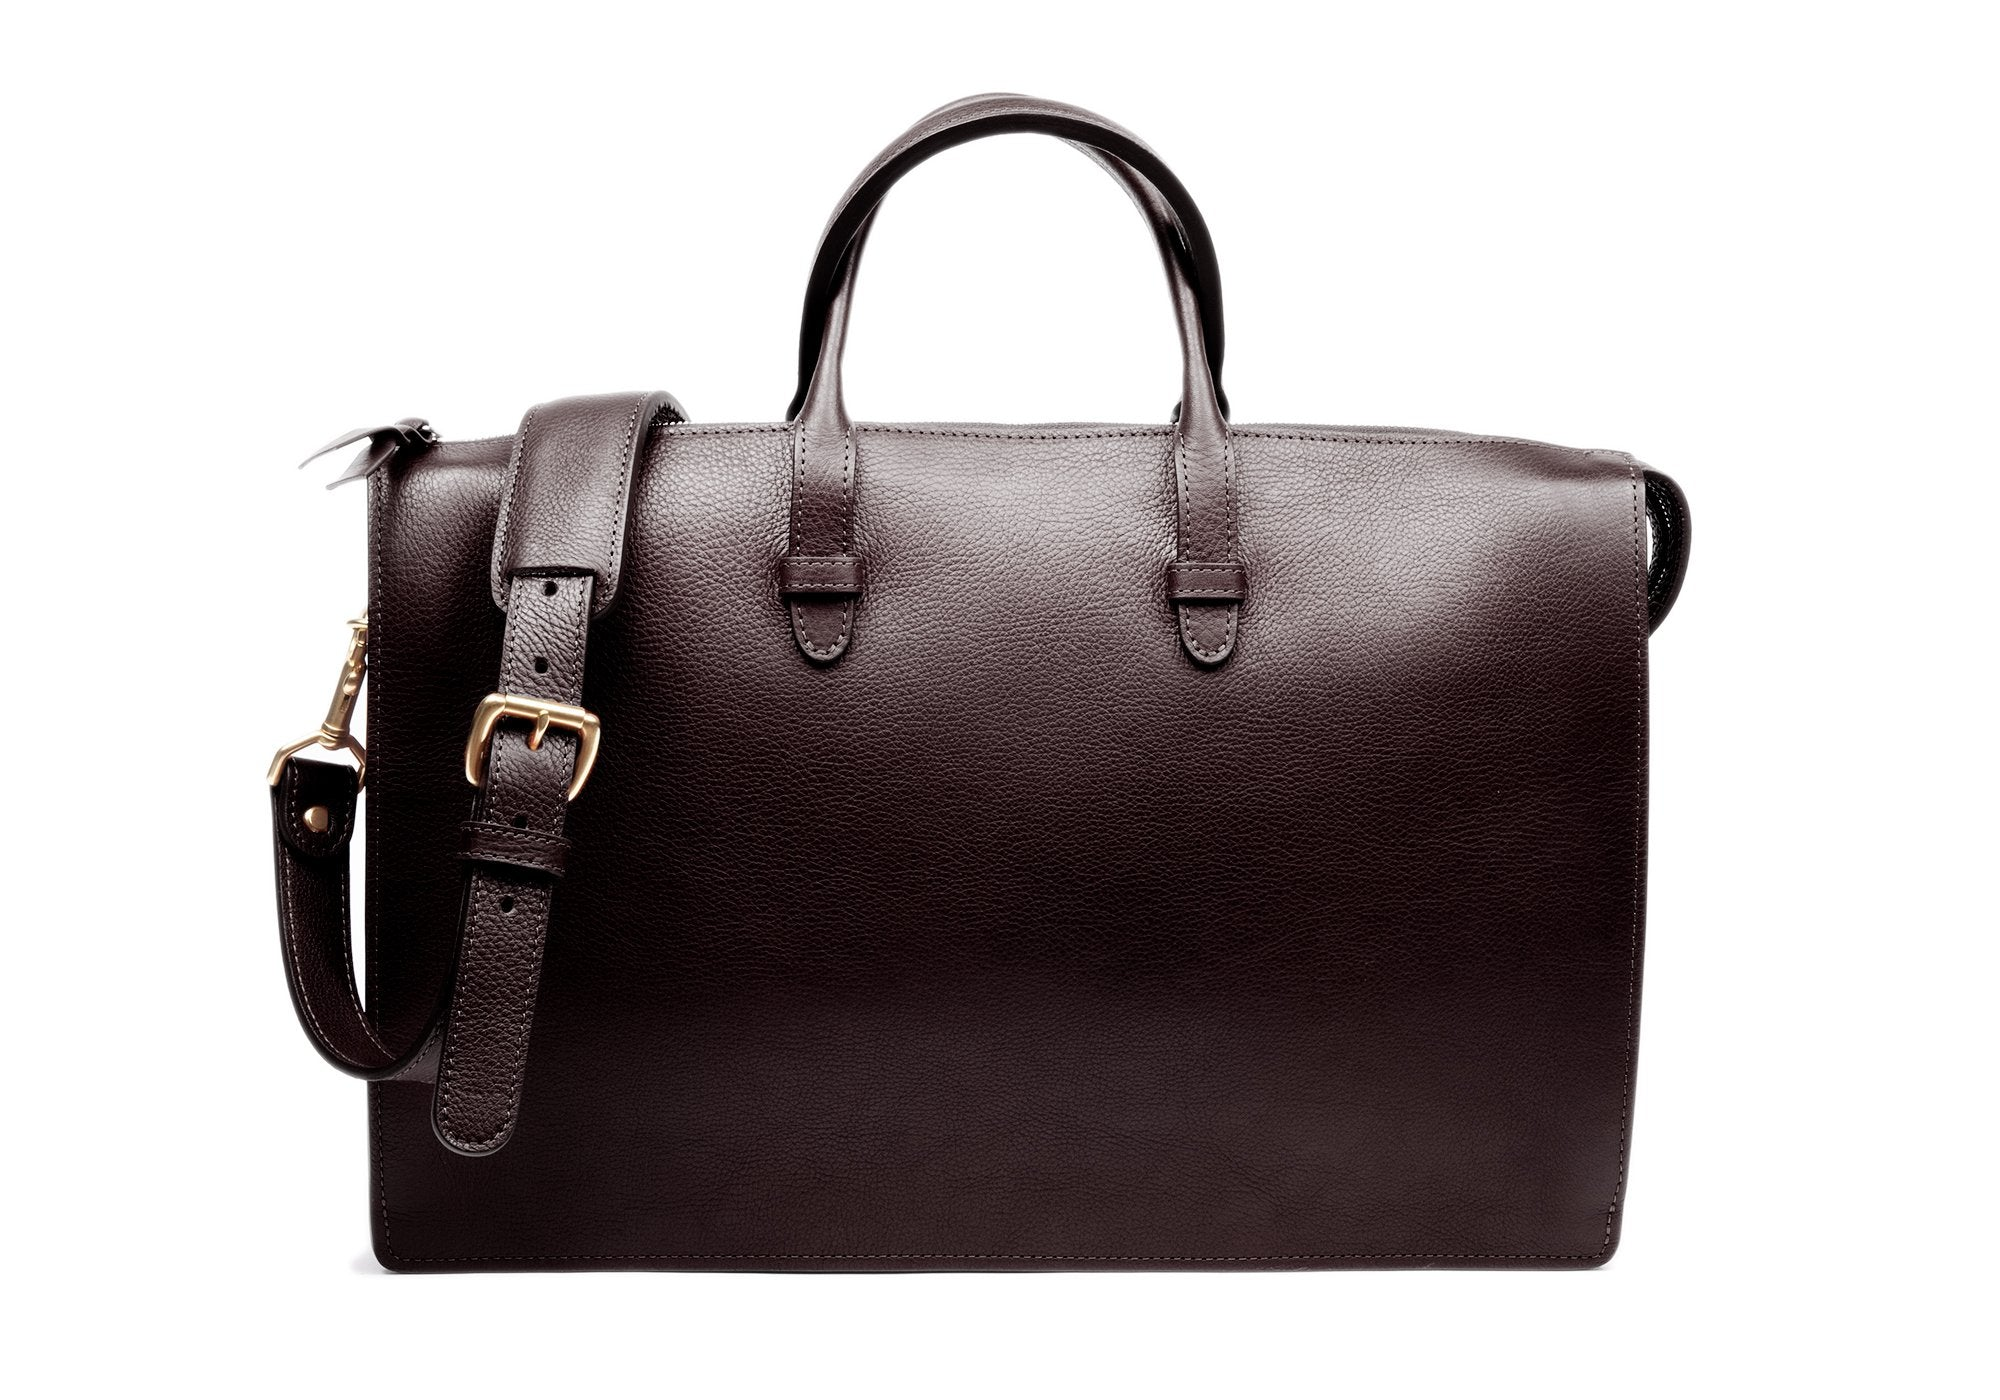 The Triumph Briefcase Chocolate